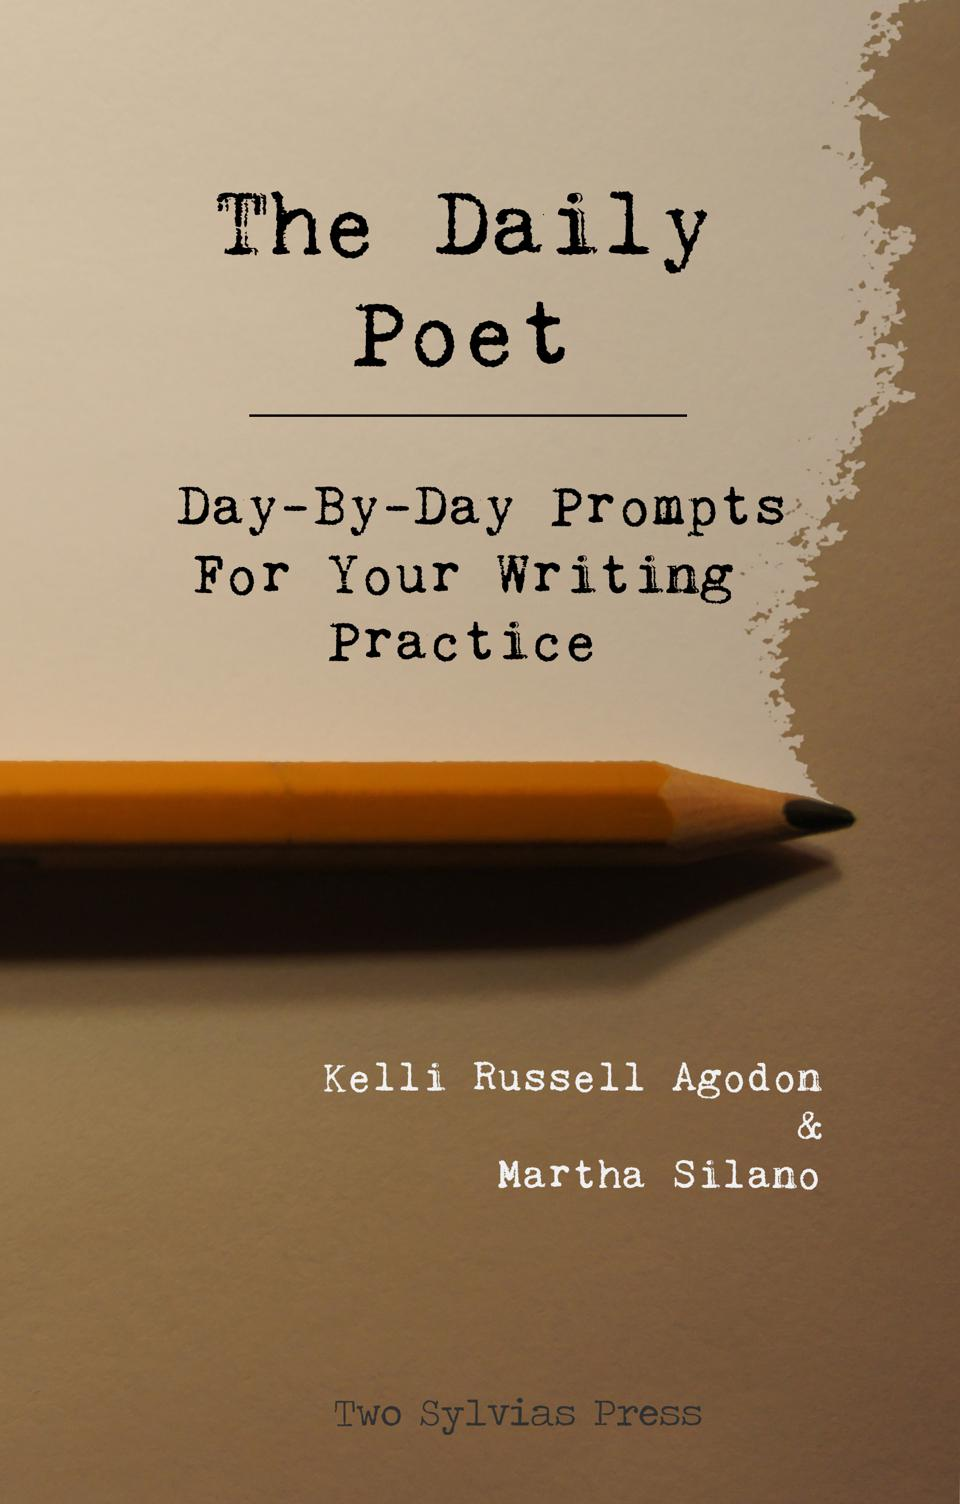 daily poet poetry writing prompts two sylvias press book cover